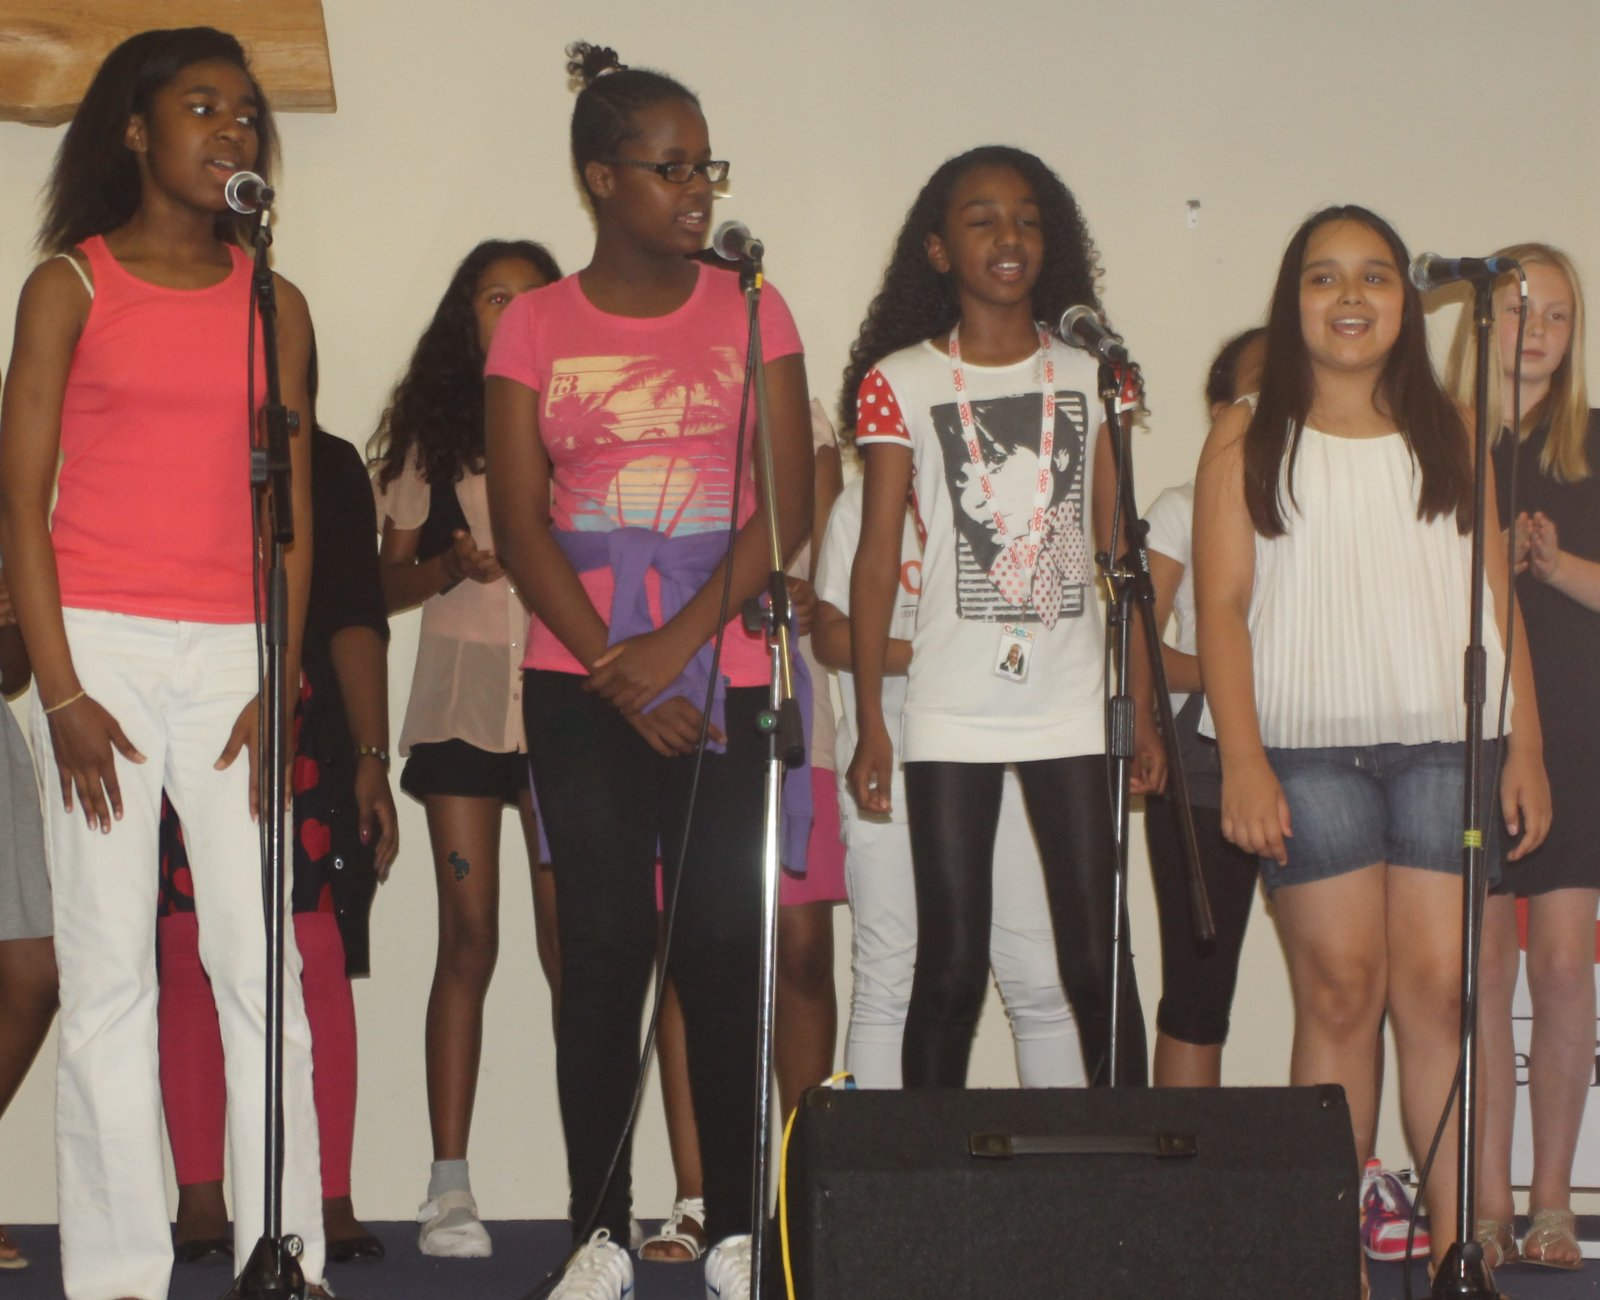 Female vocal group